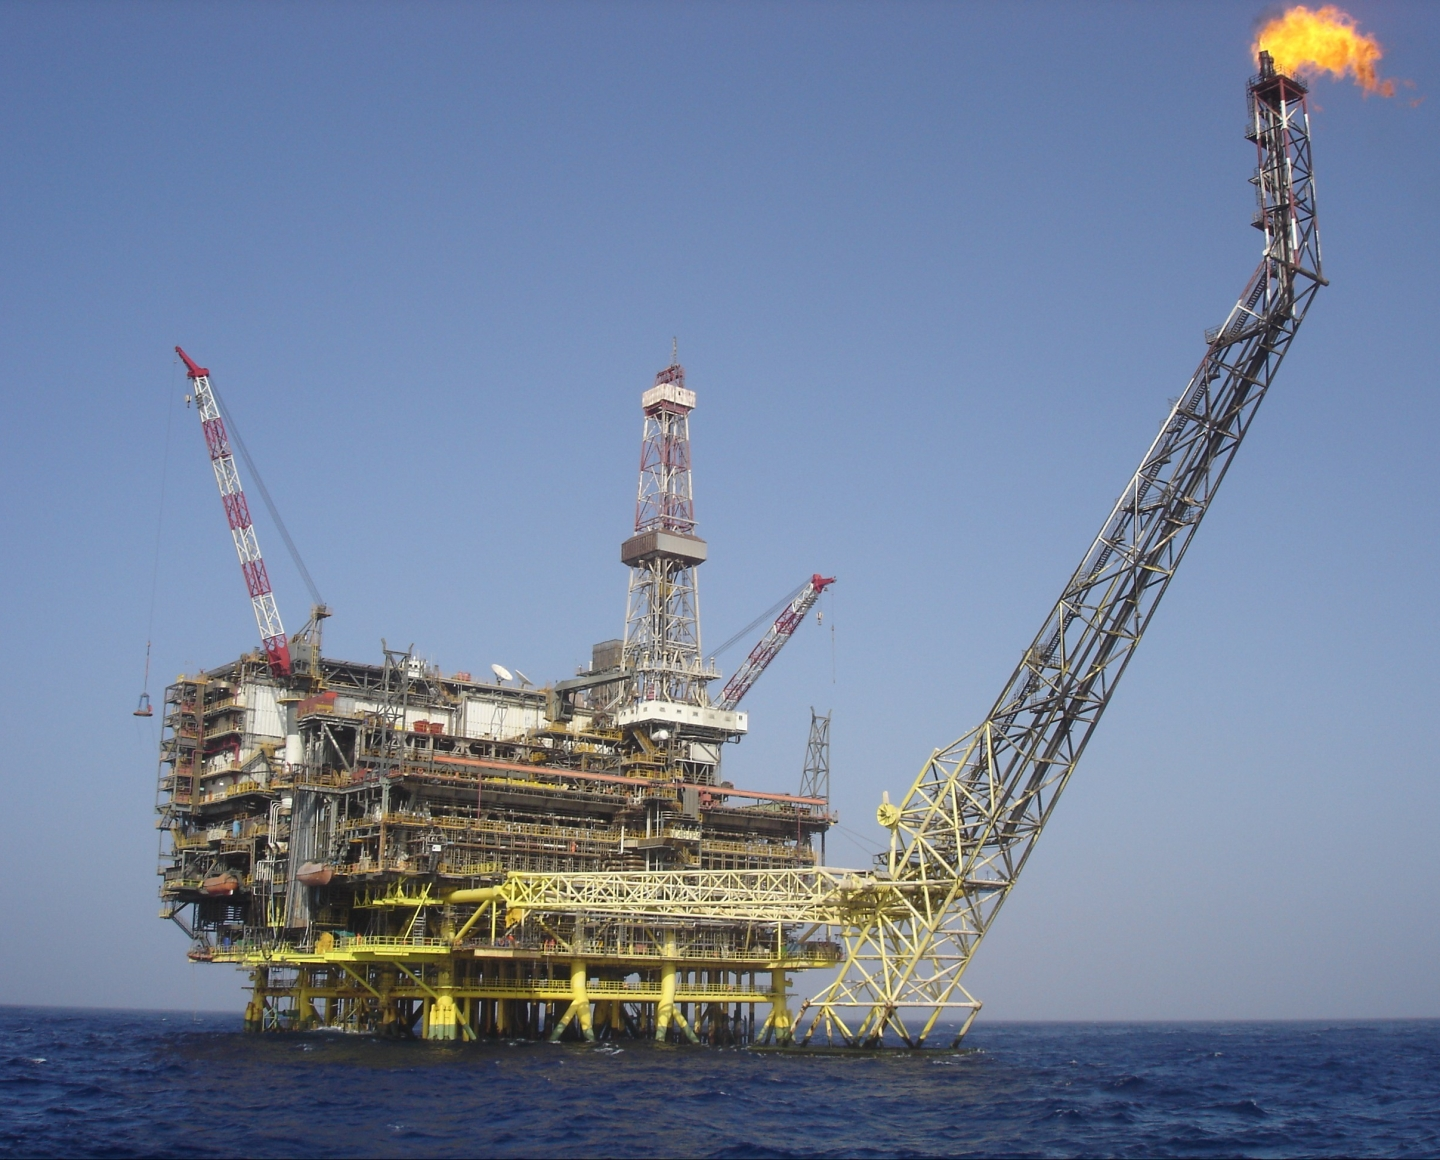 ENI Oil platform Bouri DP4